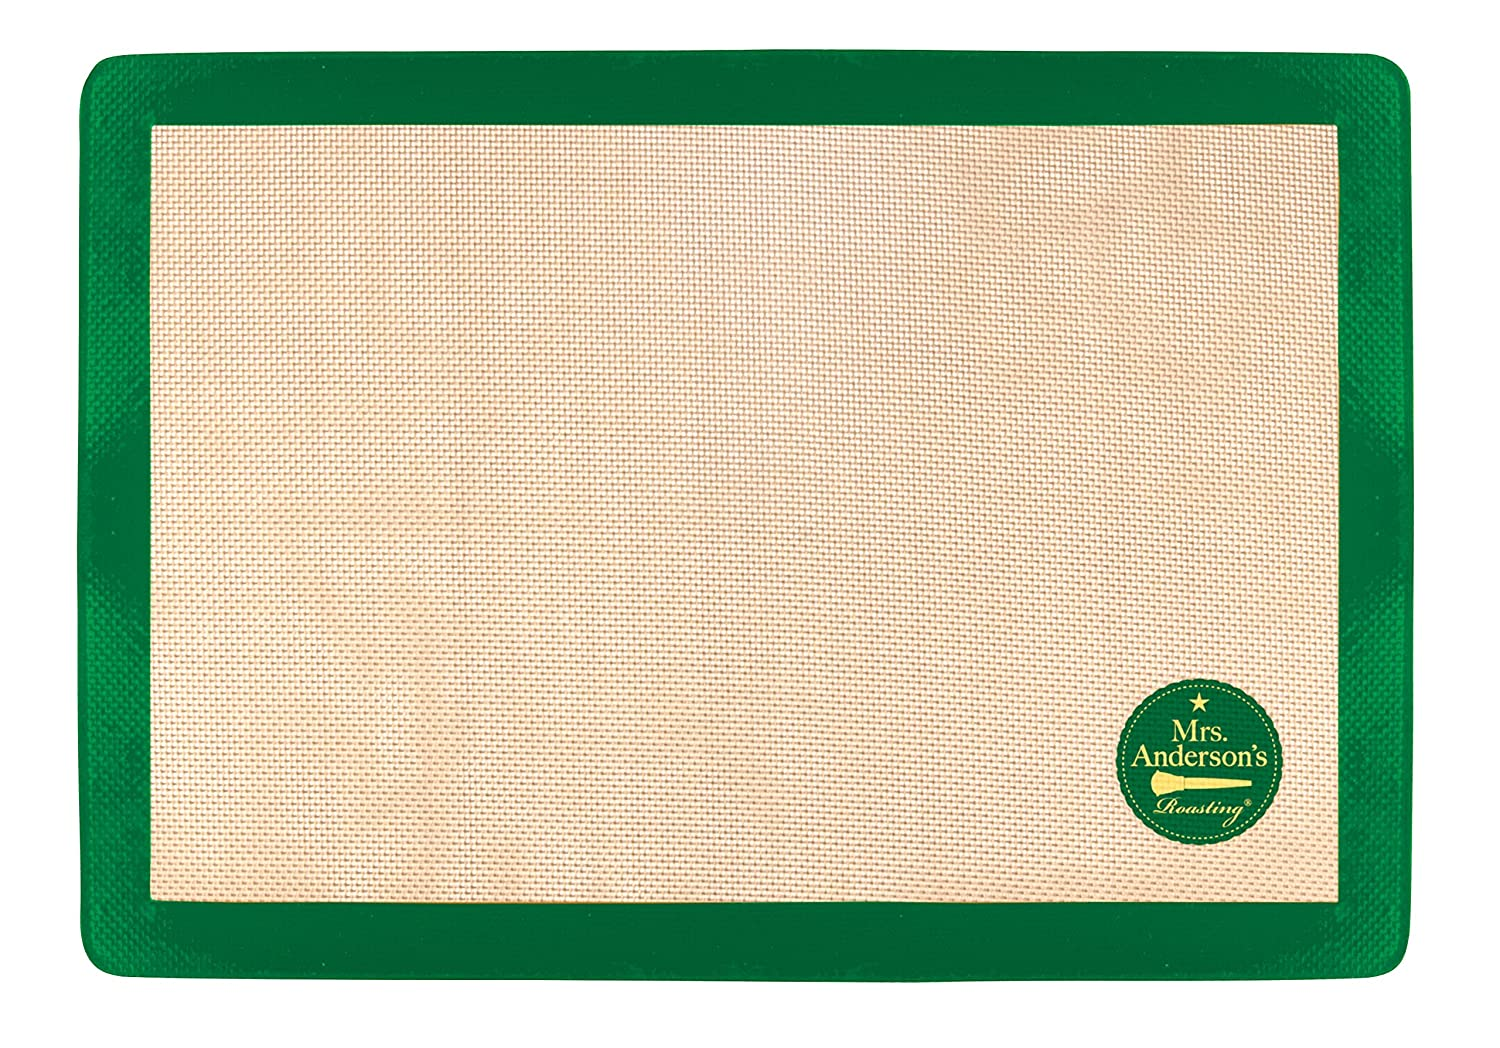 Anderson/'s Baking Non-Stick Silicone Big Baking Mat 20.5-Inches x 14.5-Inches Mrs